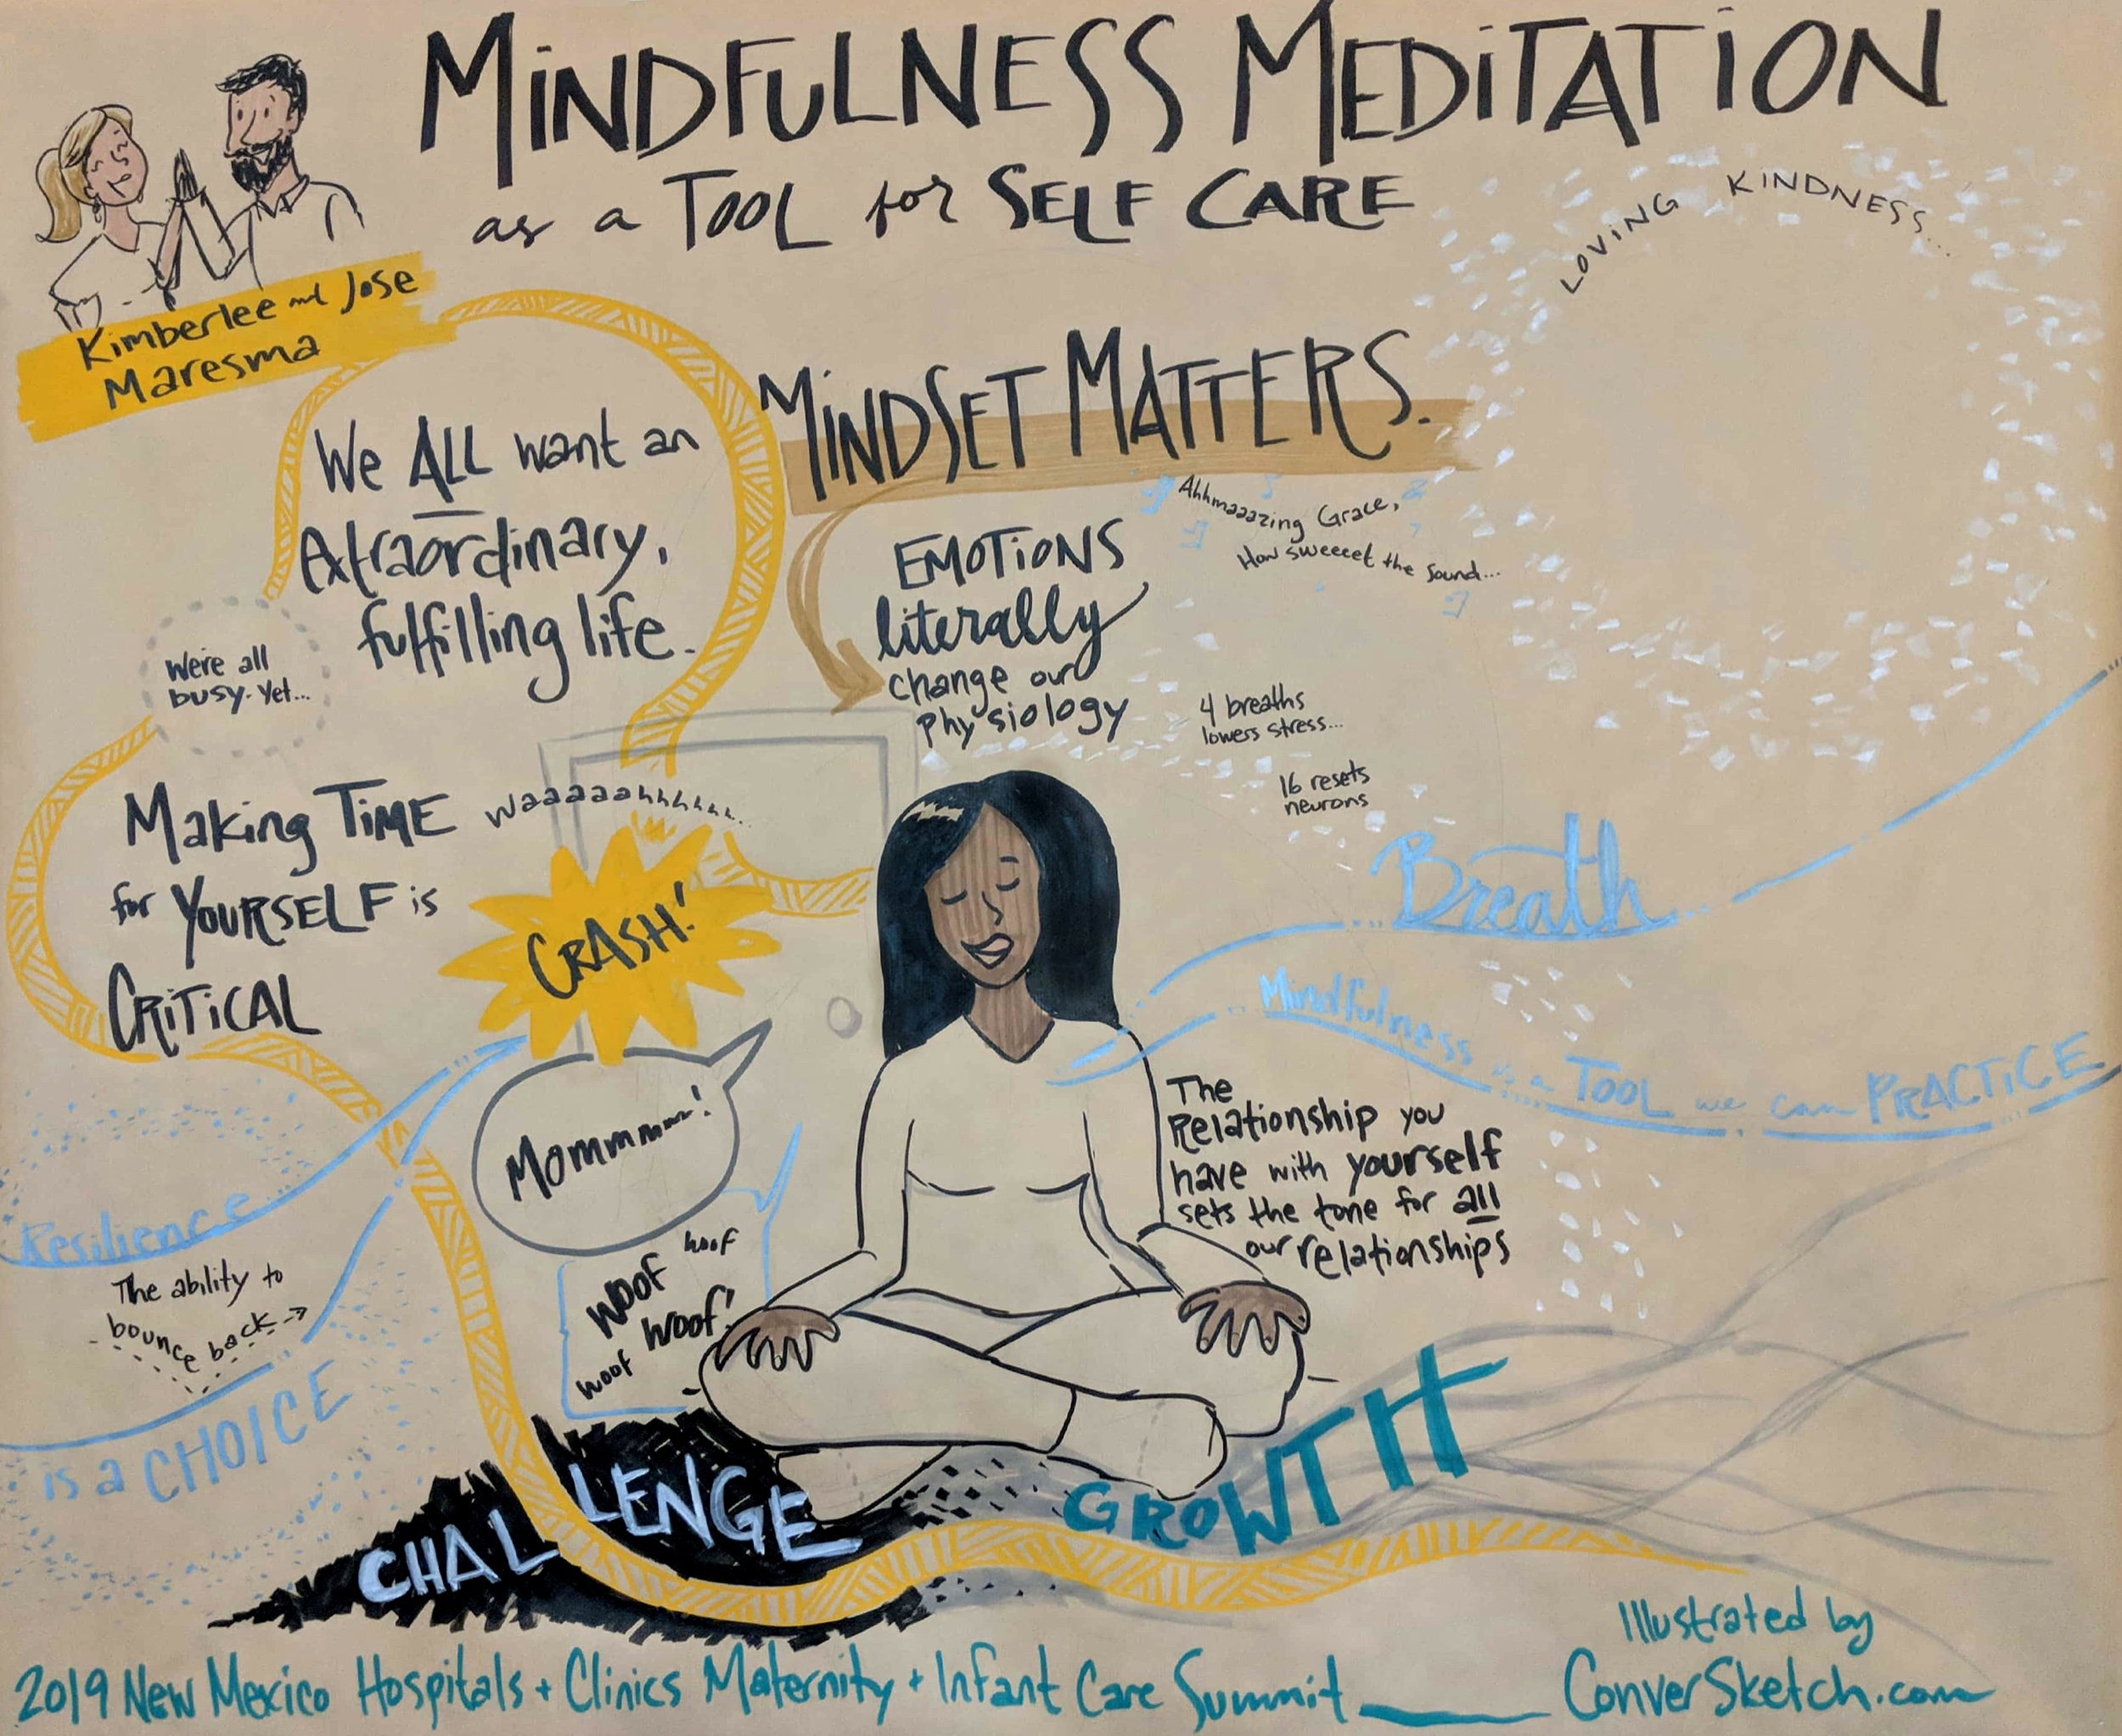 Albuquerque, New Mexico : Back with the New Mexico Breastfeeding Task Force to support a Summit on Maternity and Infant Care for professionals across the state. A favorite session and graphic recording chart was on Mindfulness Meditation as a tool for self care. Namaste!